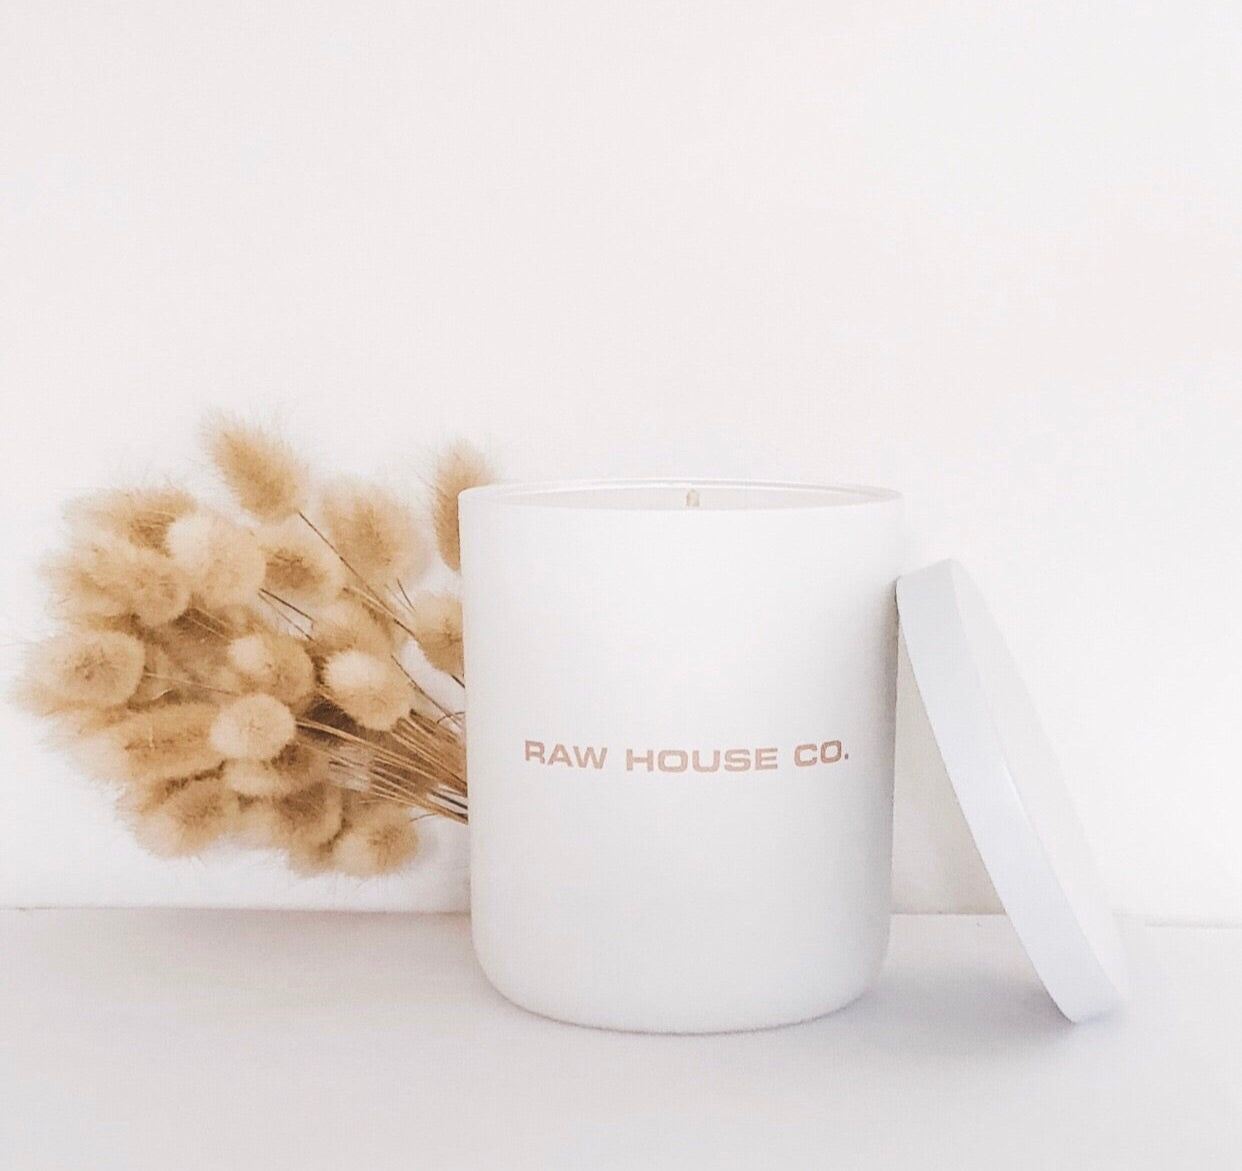 TEA HOUSE |  PURE SOY CANDLE